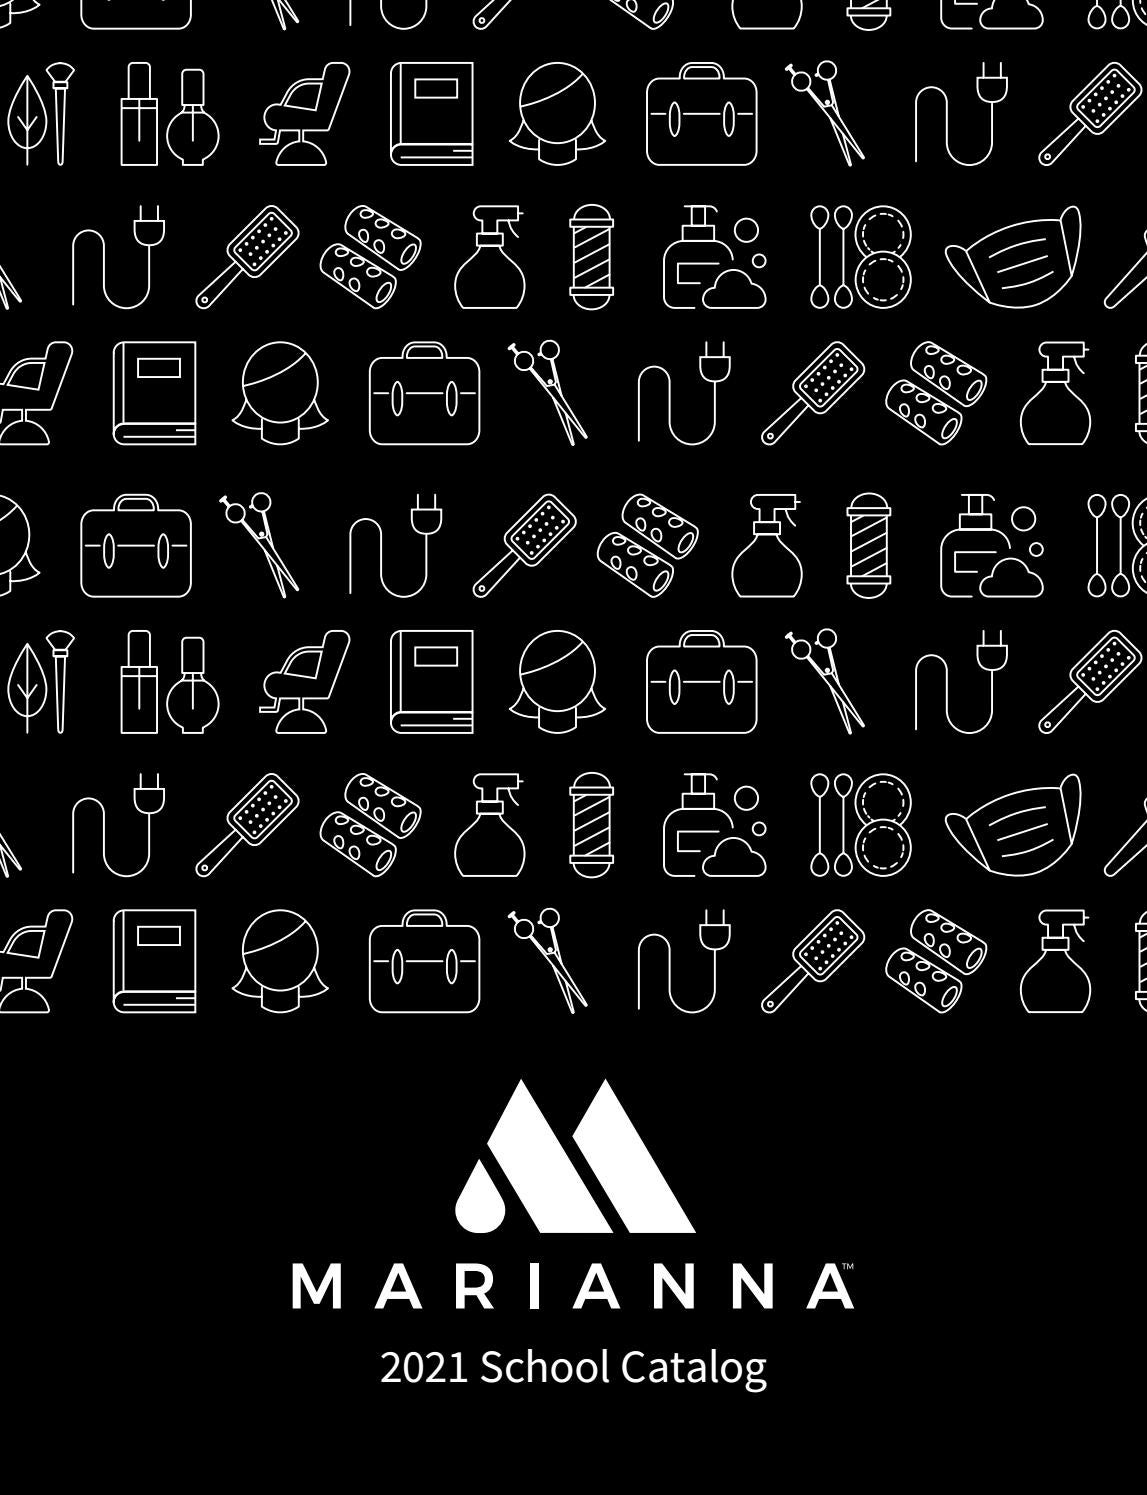 2021 Marianna School Catalog By Mariannabeauty Issuu